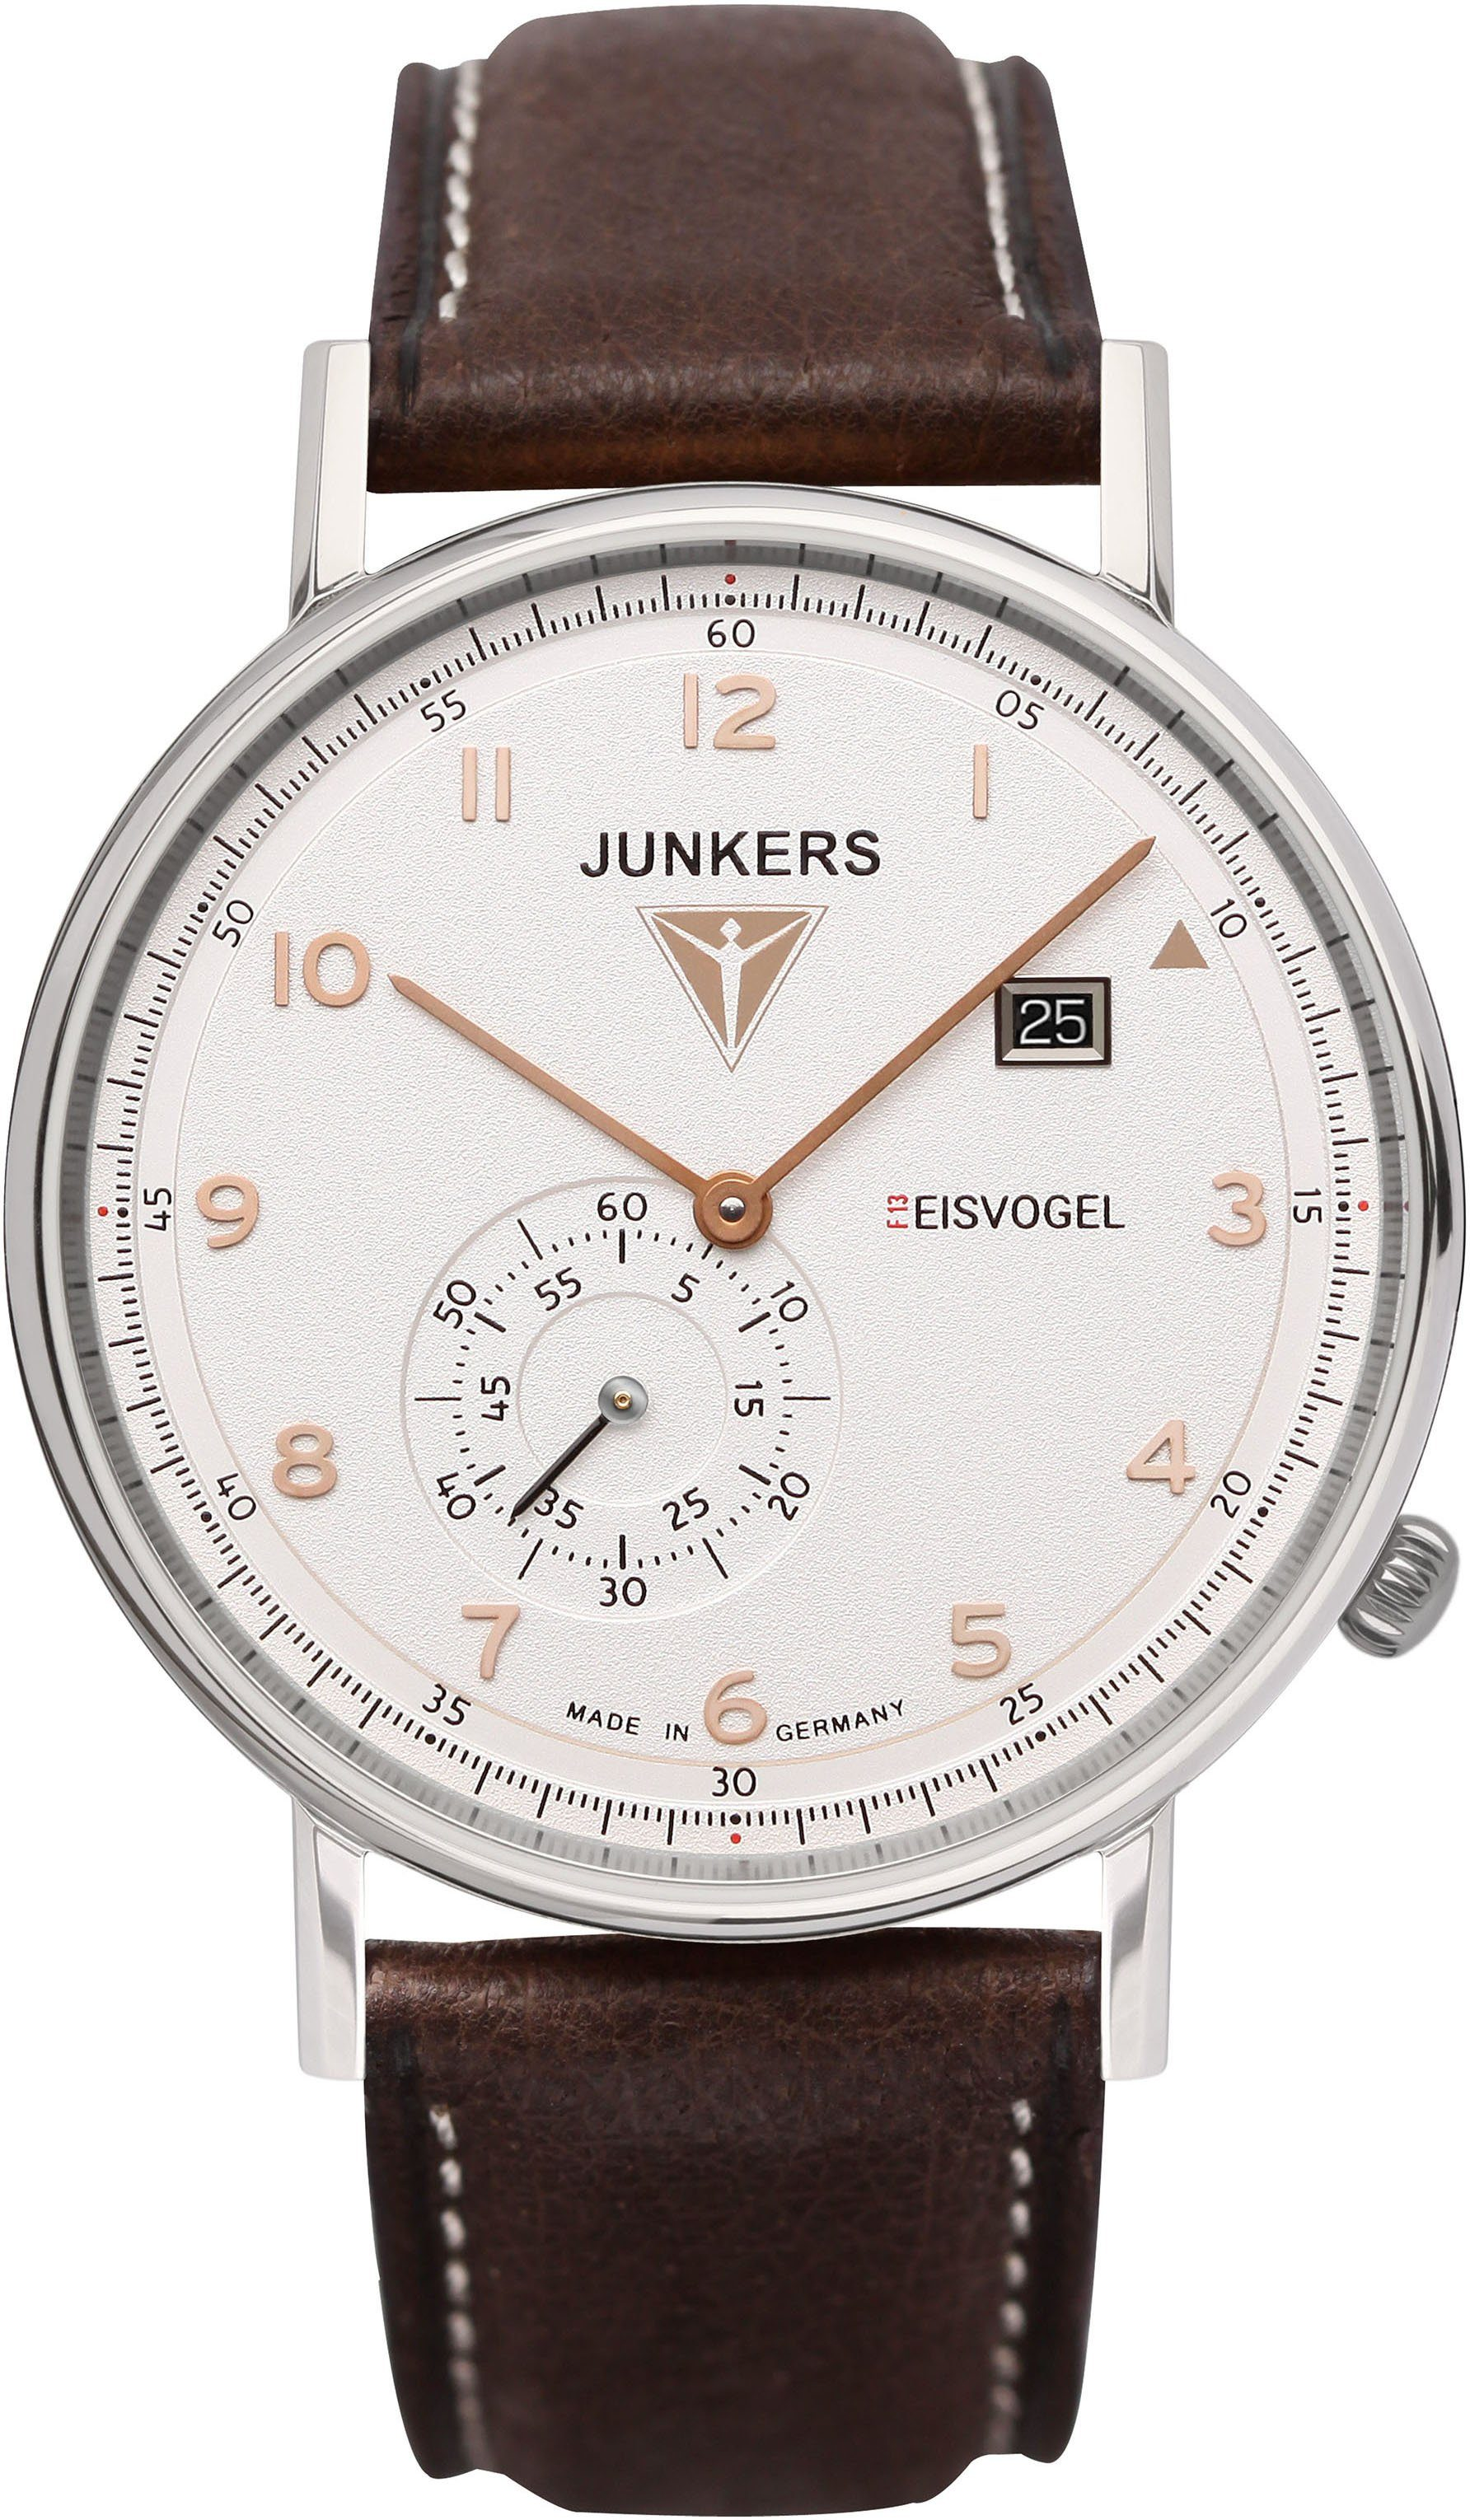 Junkers-Uhren Quarzuhr »EISVOGEL F13, 6730-4«, Made in Germany